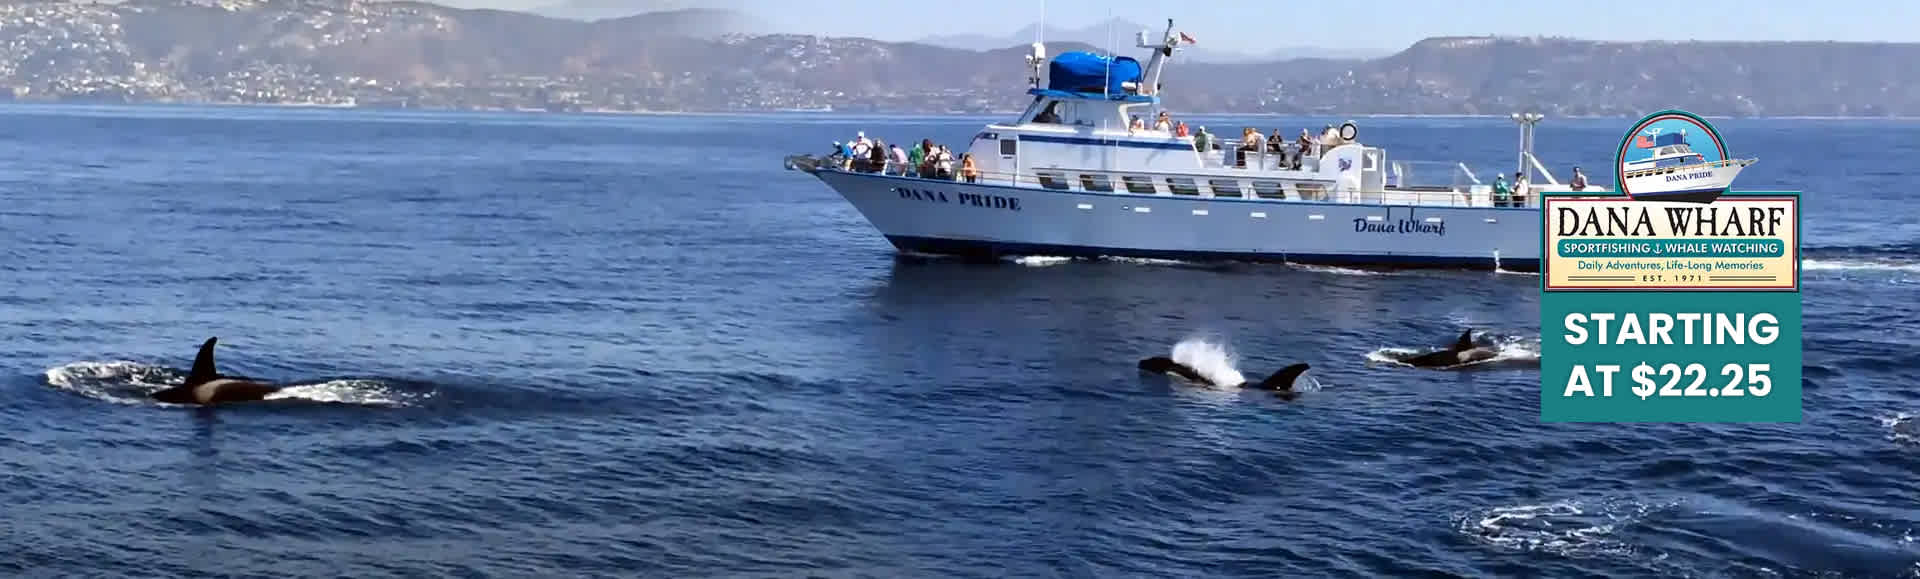 Dana Wharf Sportfishing, Whale Watching & Wine Cruises Discounted Tickets